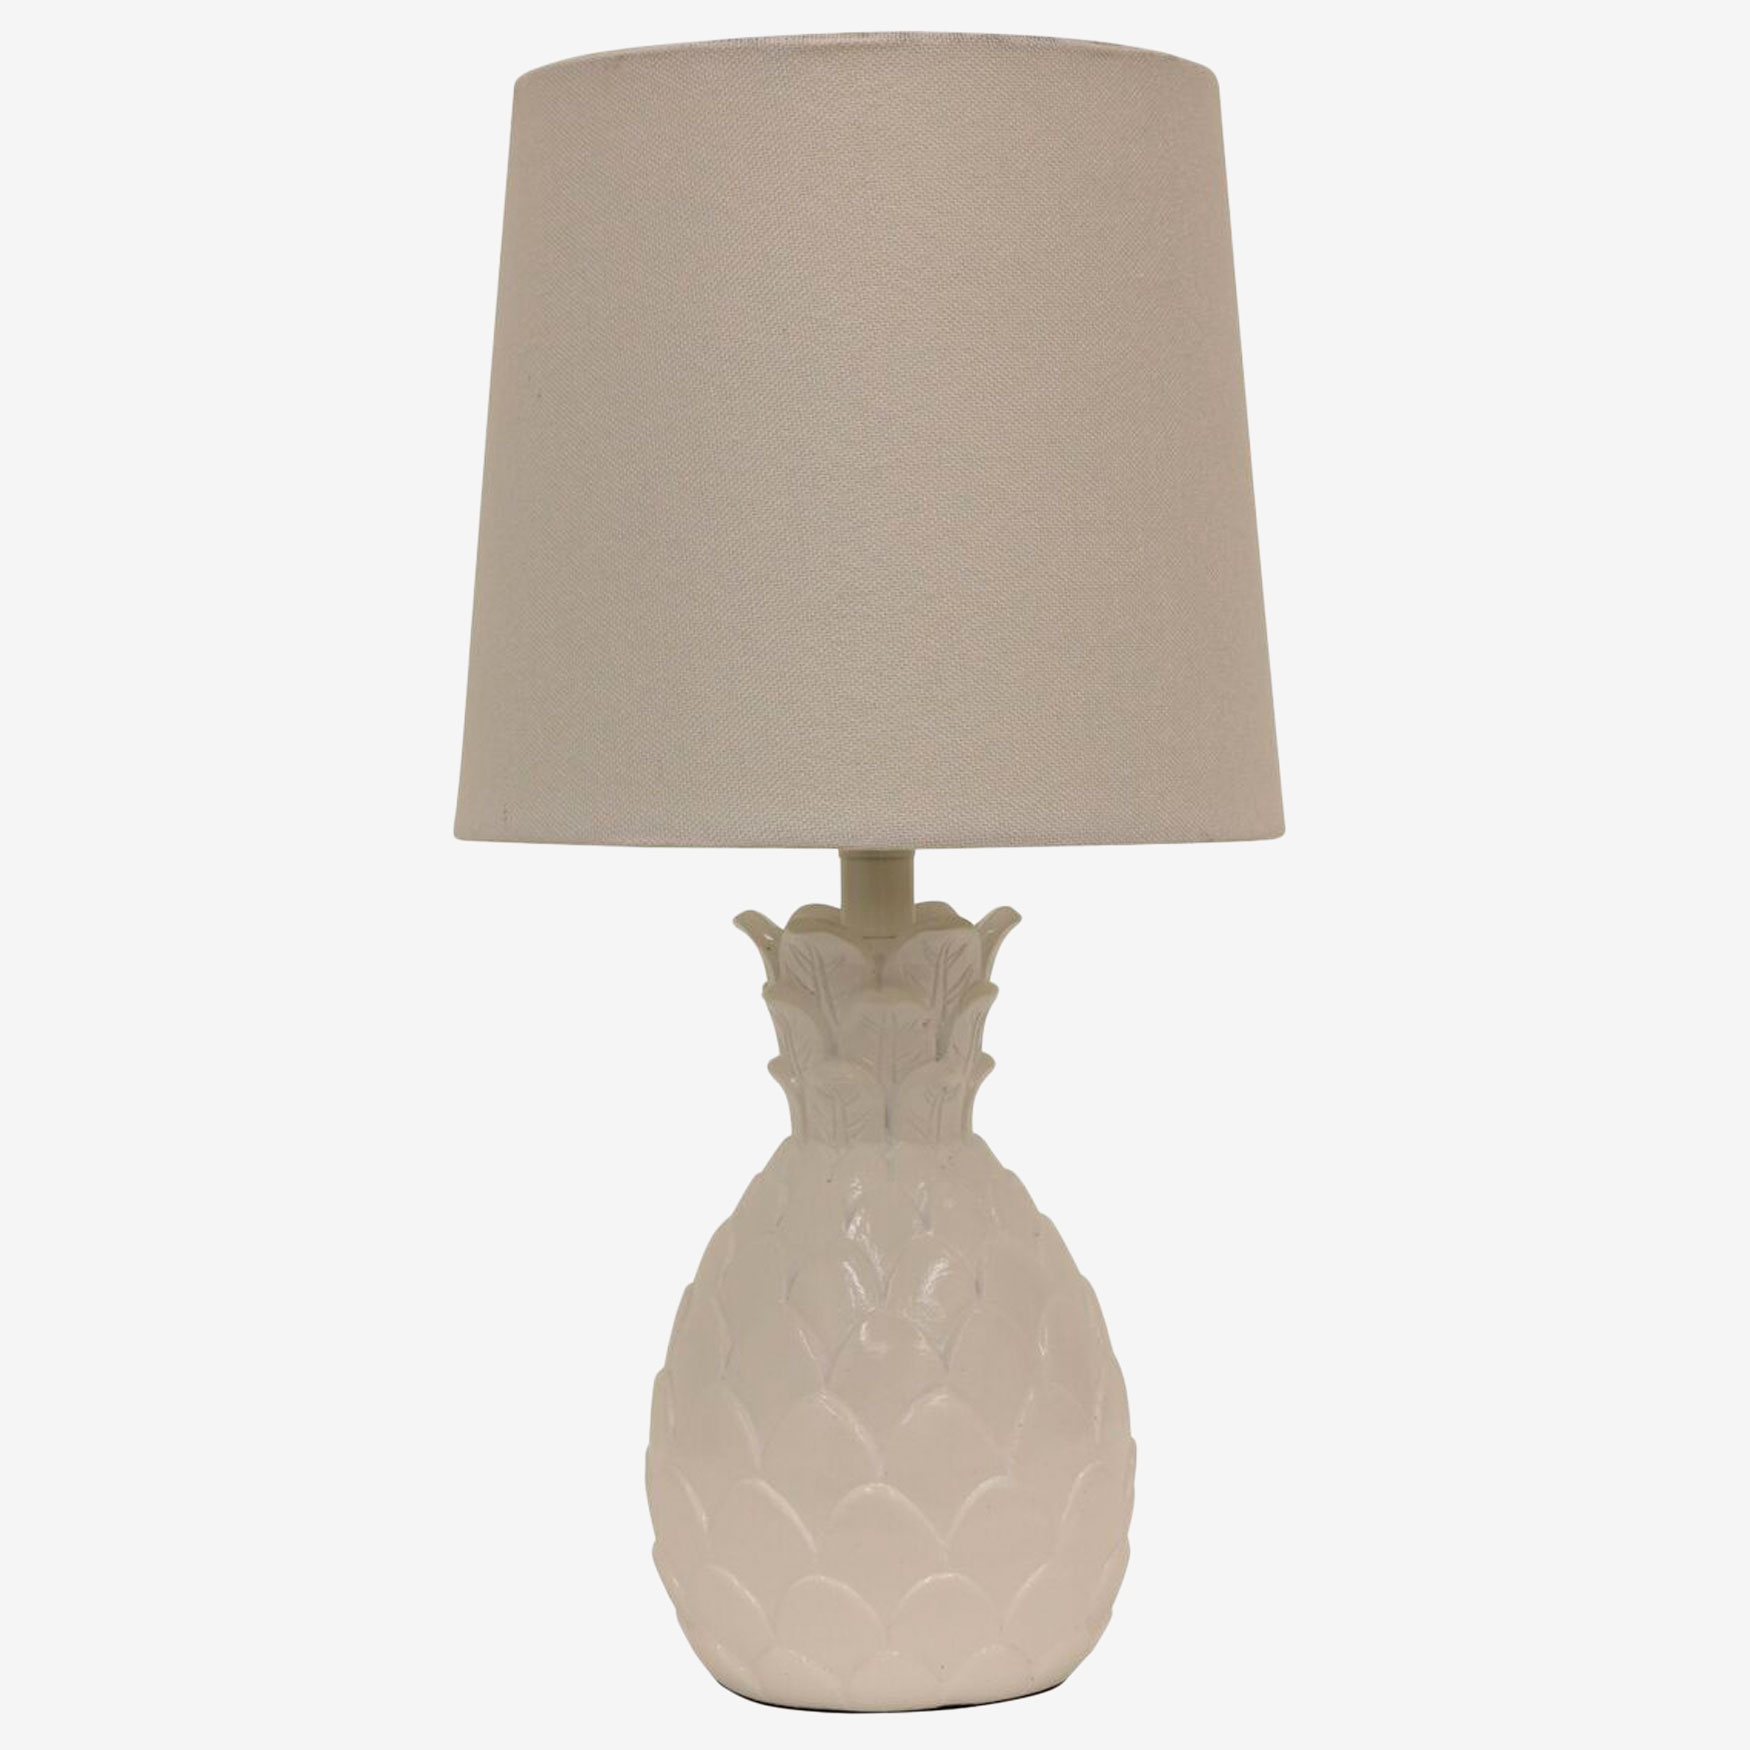 Pineapple Table Lamp,